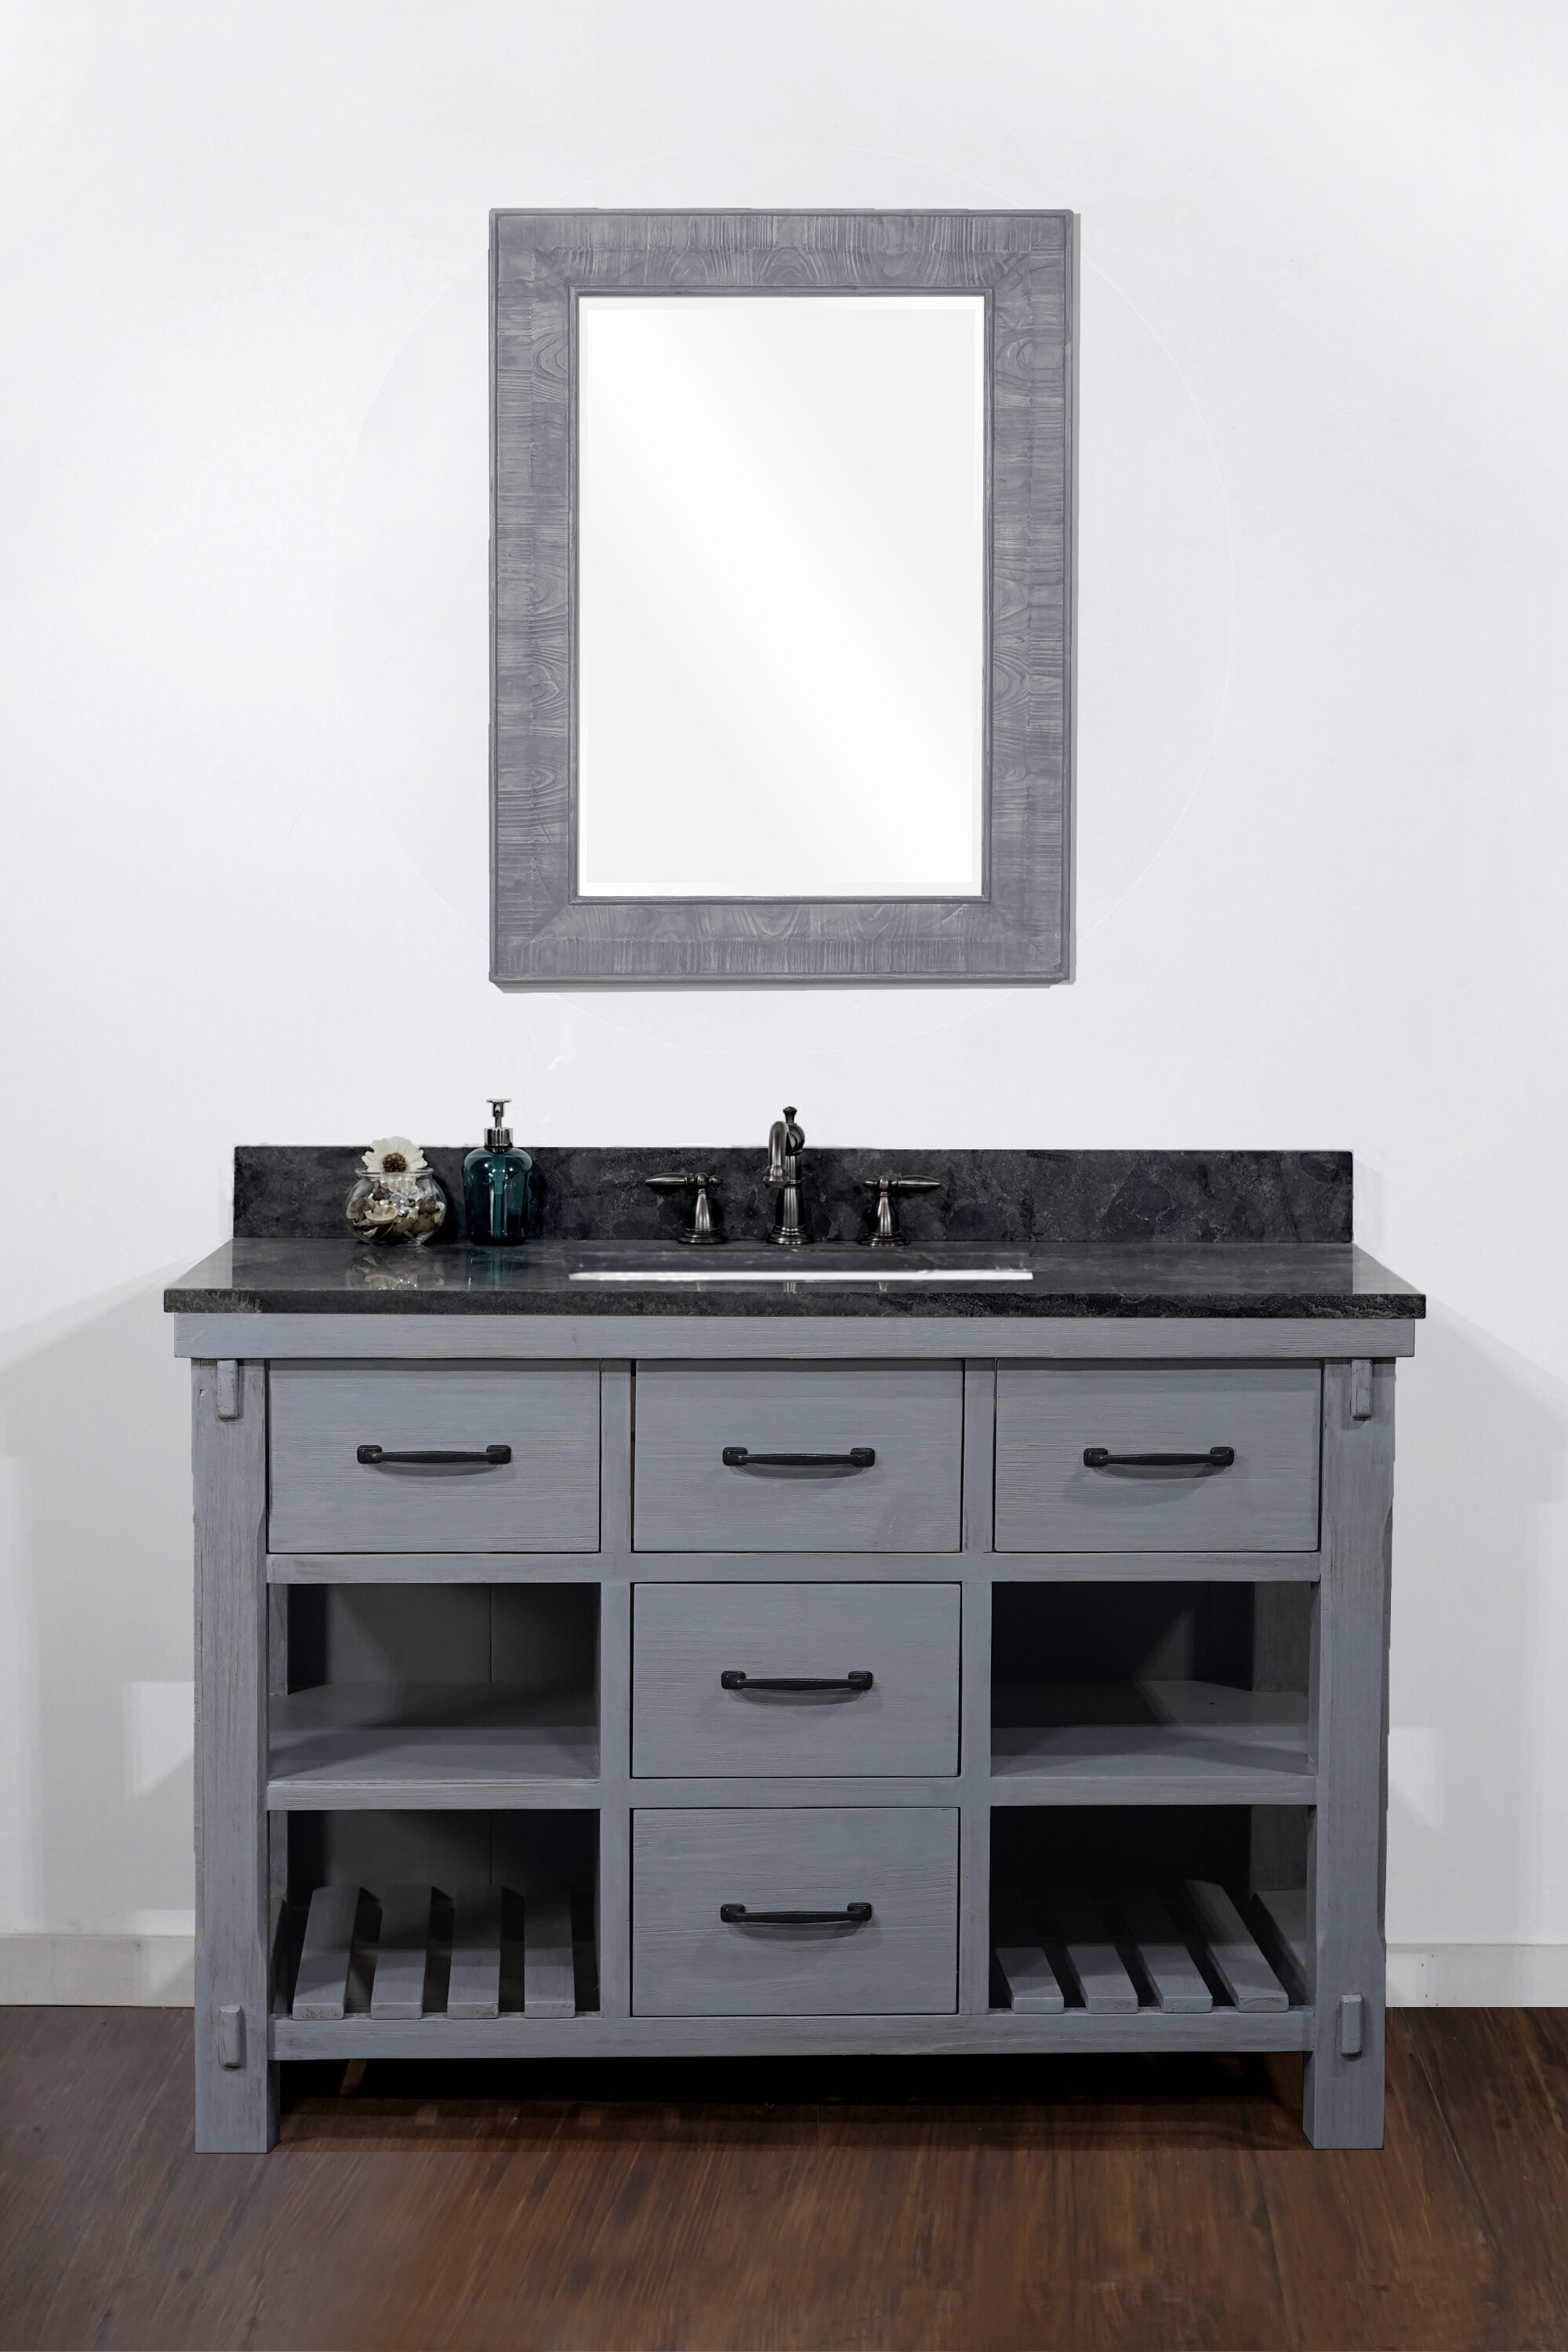 Gracie Oaks Debora Solid Fir 49 Single Bathroom Vanity Set Wayfair